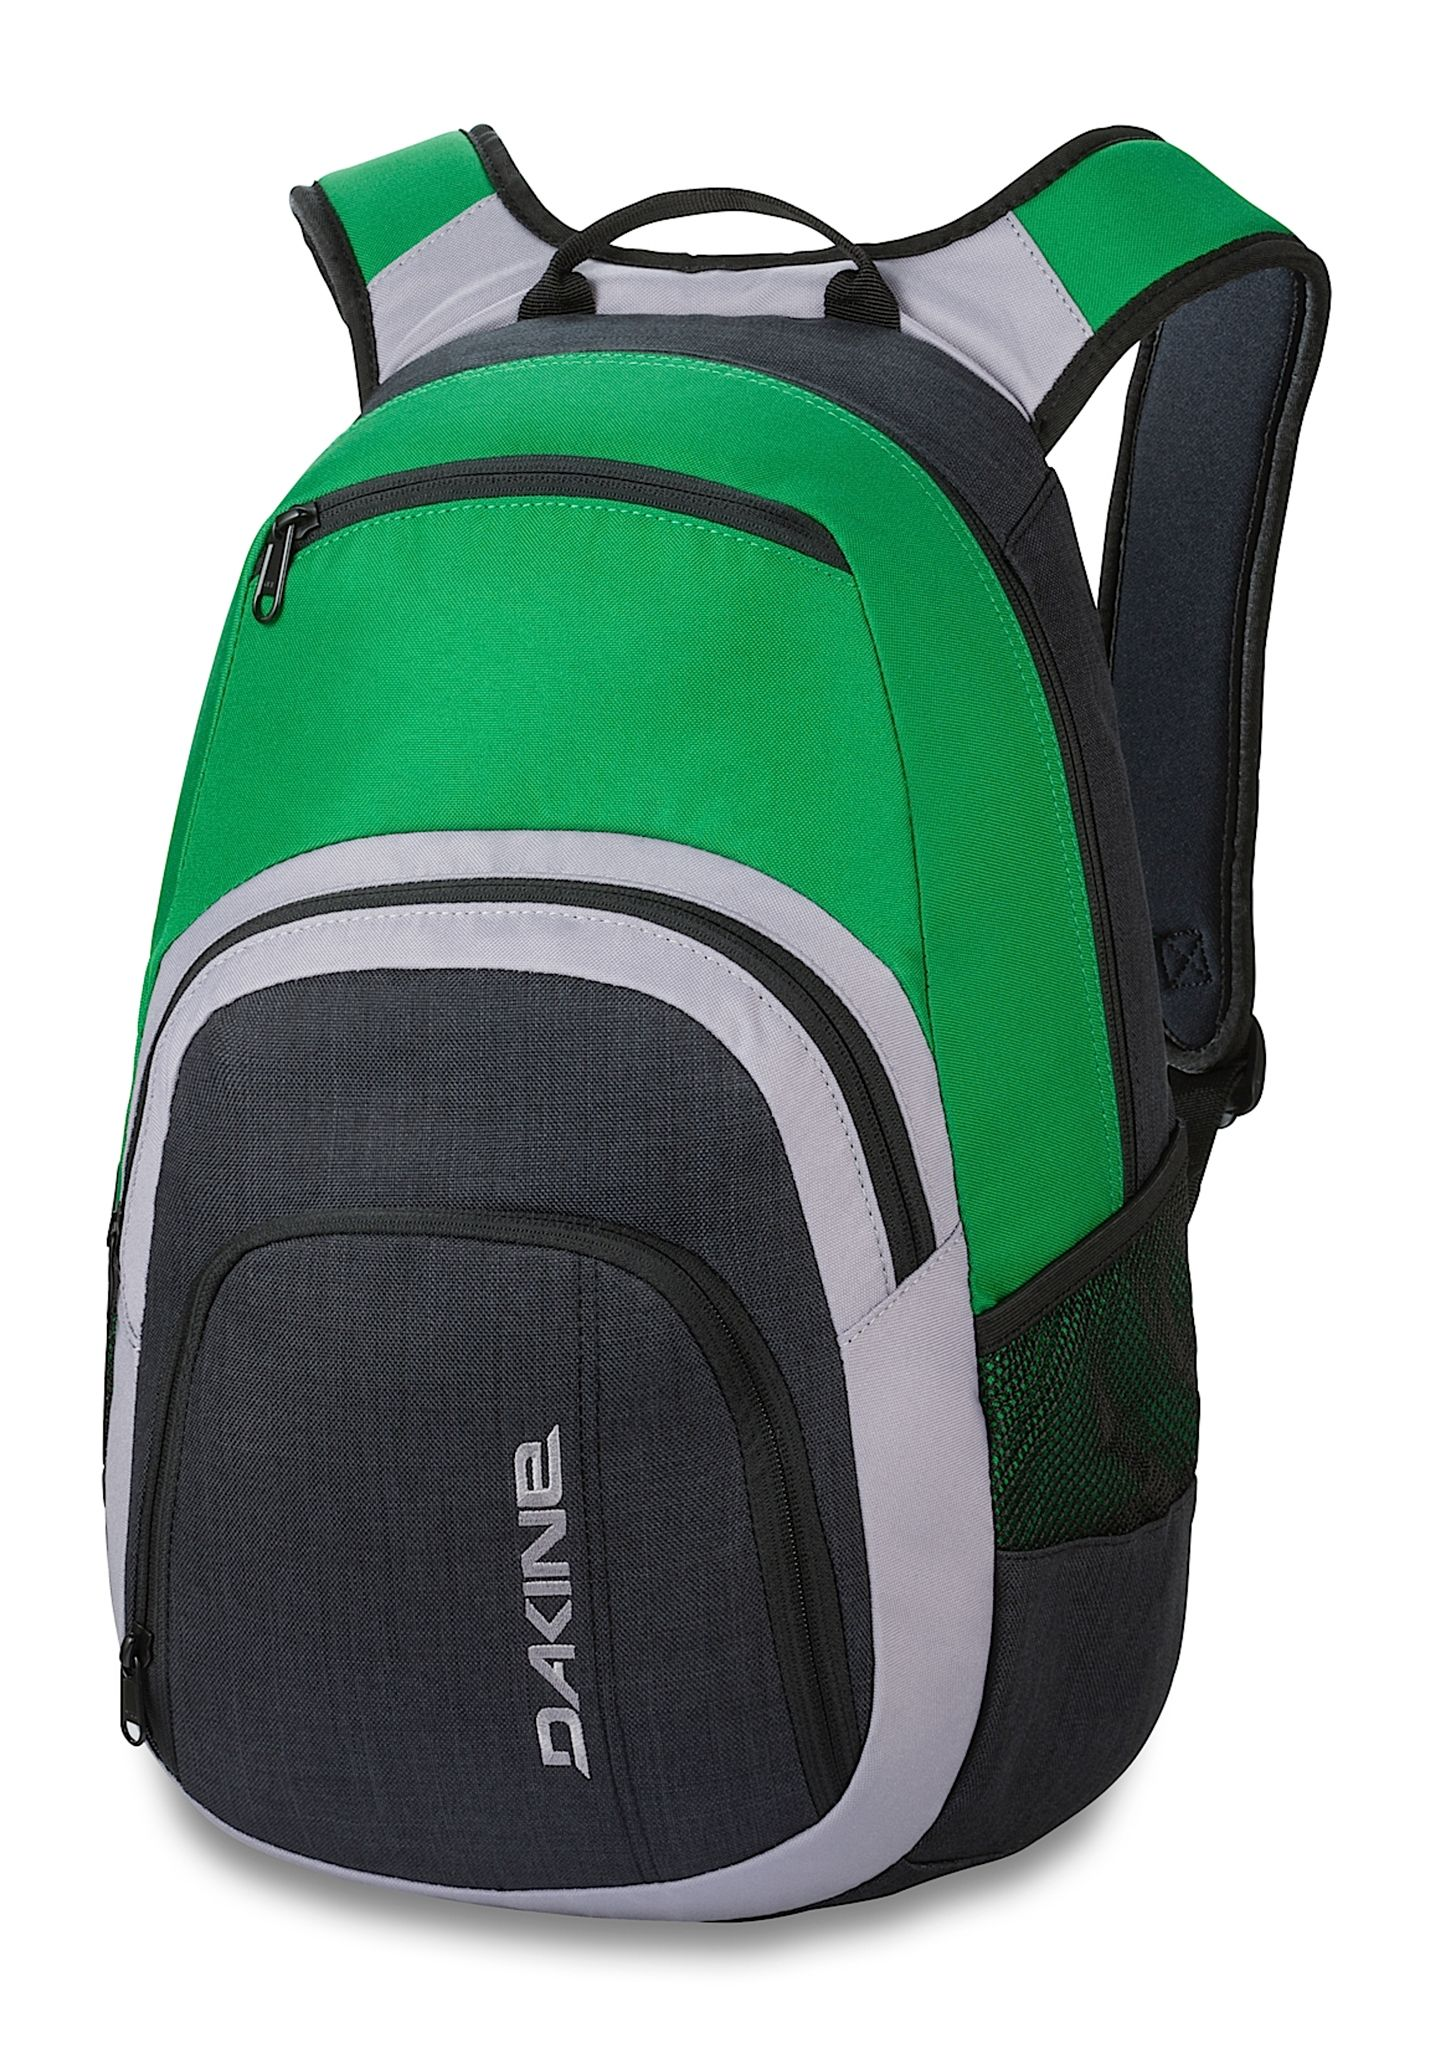 Dakine Campus 25L - Backpack for Men - Green - Planet Sports